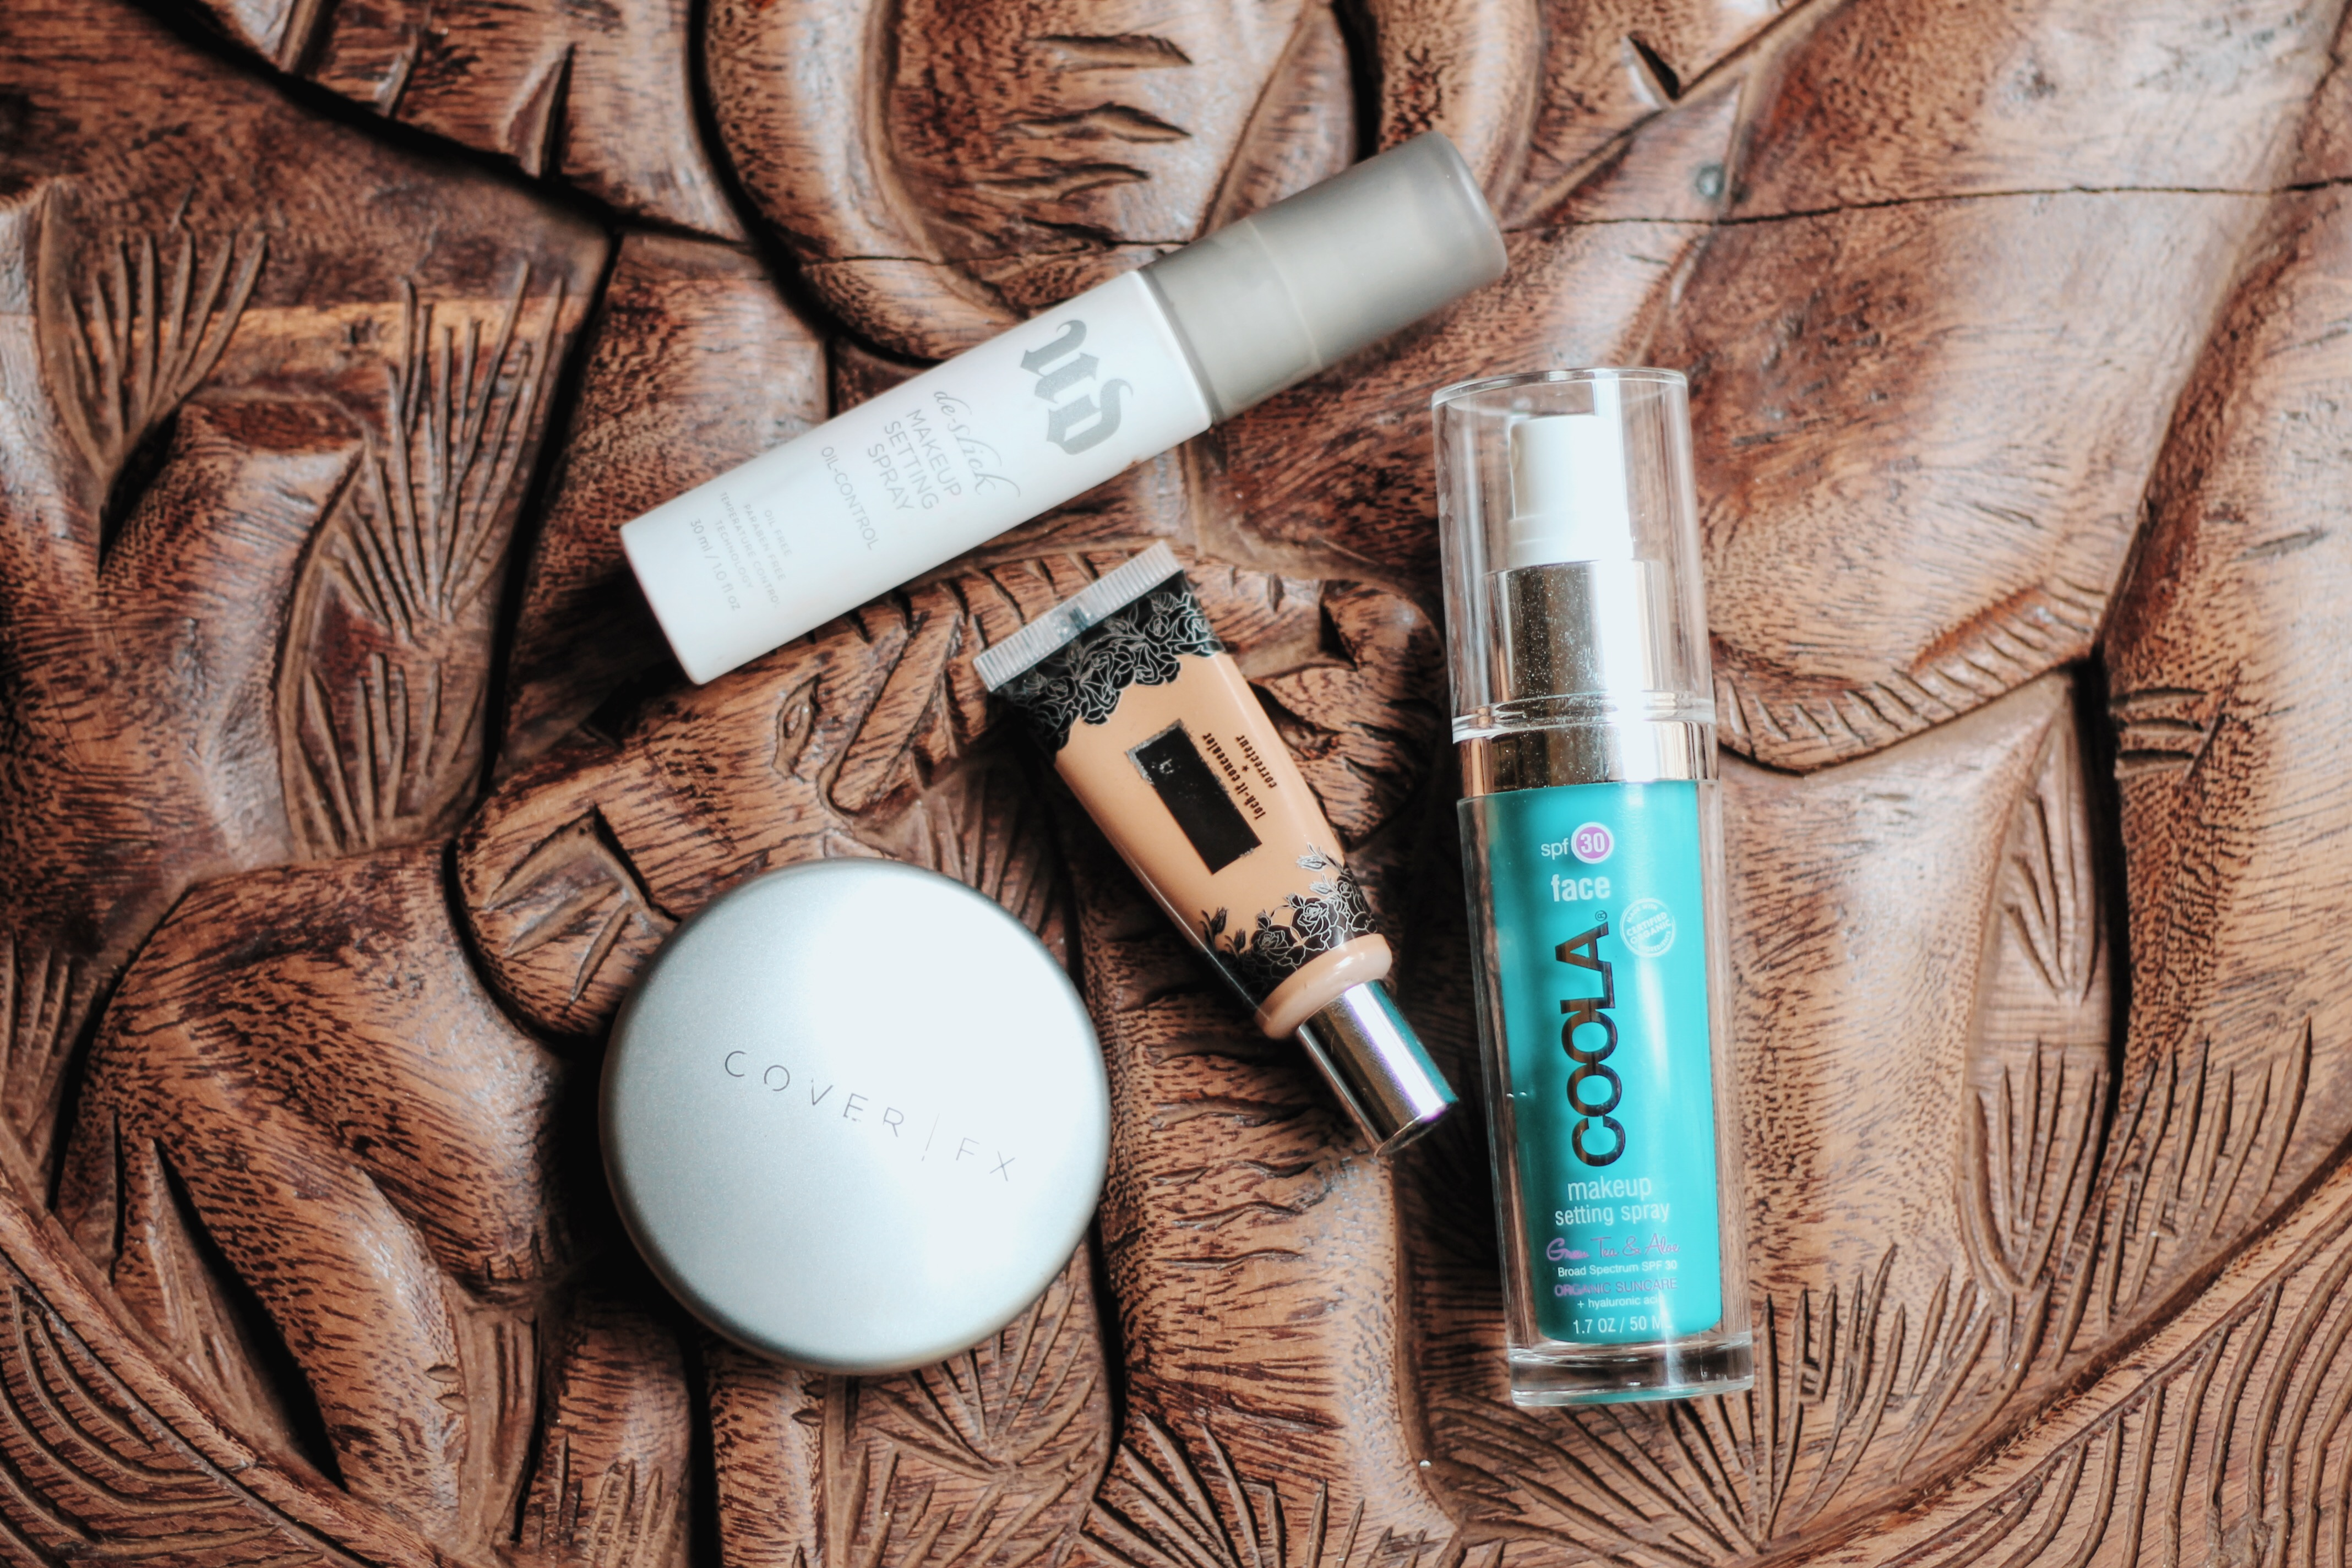 Skincare routine for dark skin women of color best sephora matte beauty products to keep make up from melting in the summer for oily skin, beauty blogger, ugandan blogger, dark skin blogger, african beuty darkskin black blogger